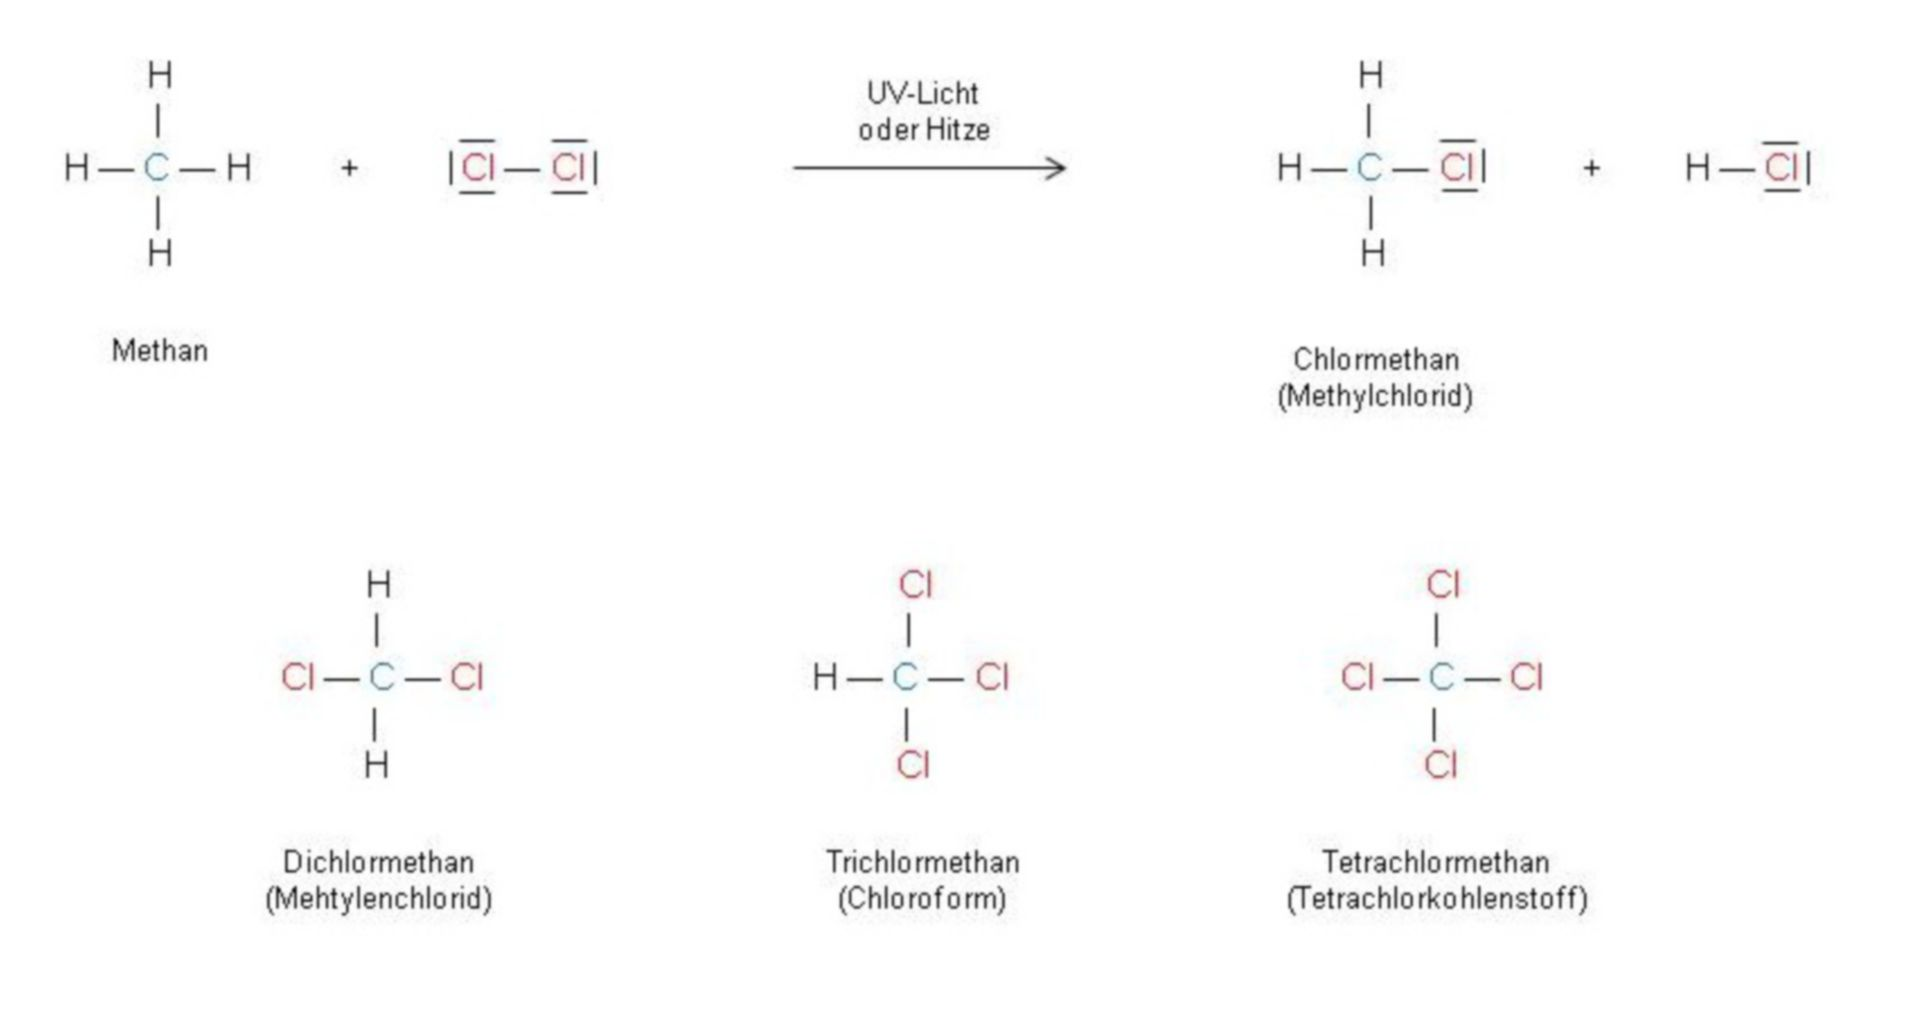 Methane reacts with chlorine